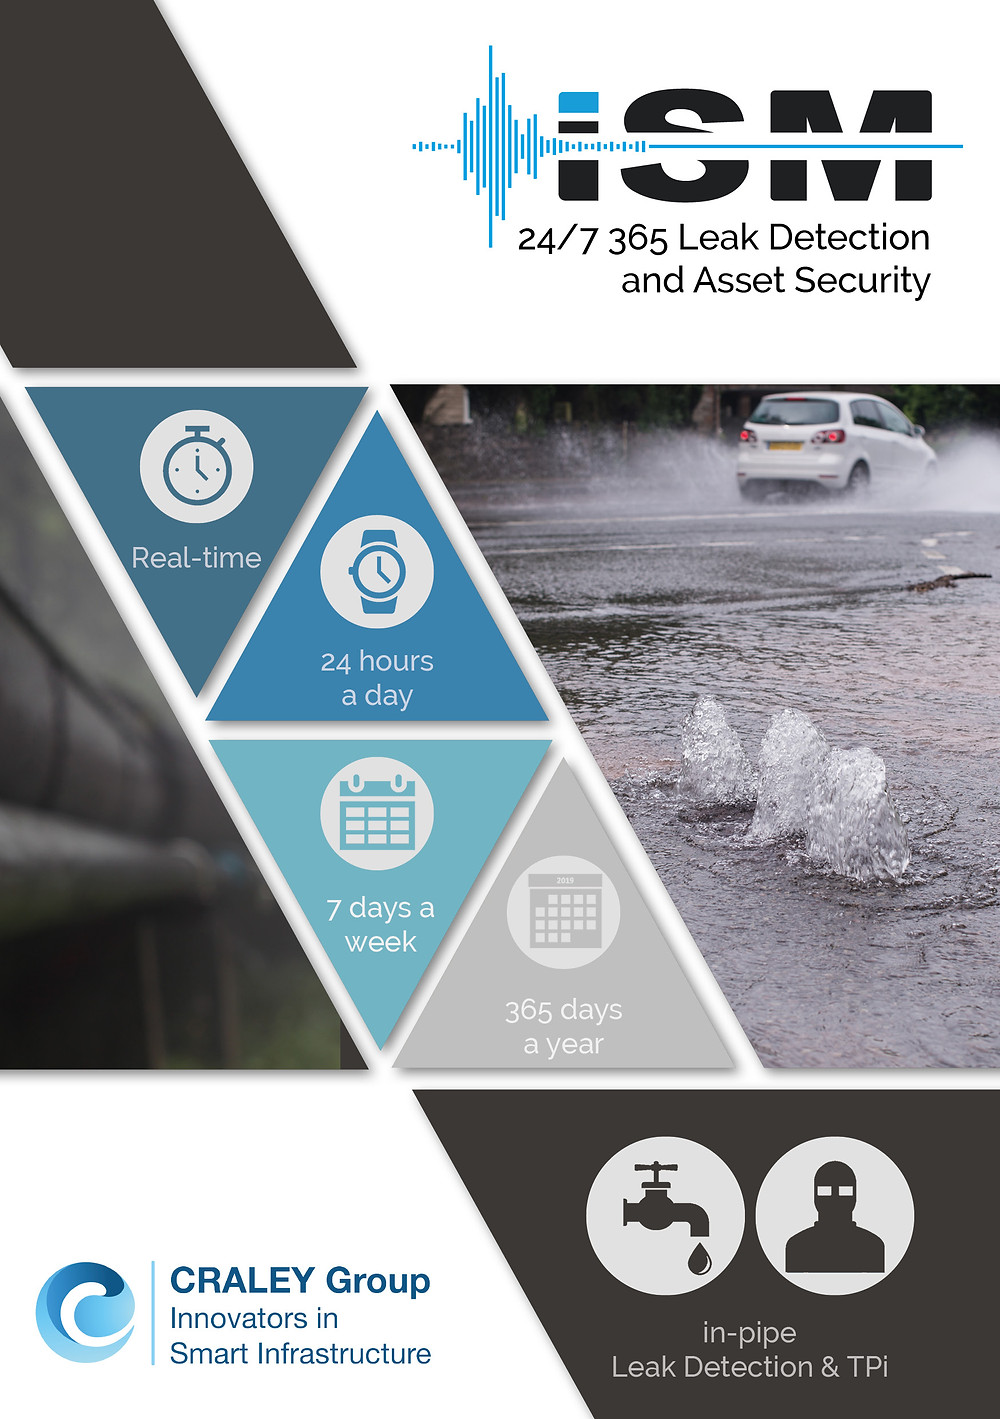 CRALEY Group's revolutionary iSM Leak Detection Solution